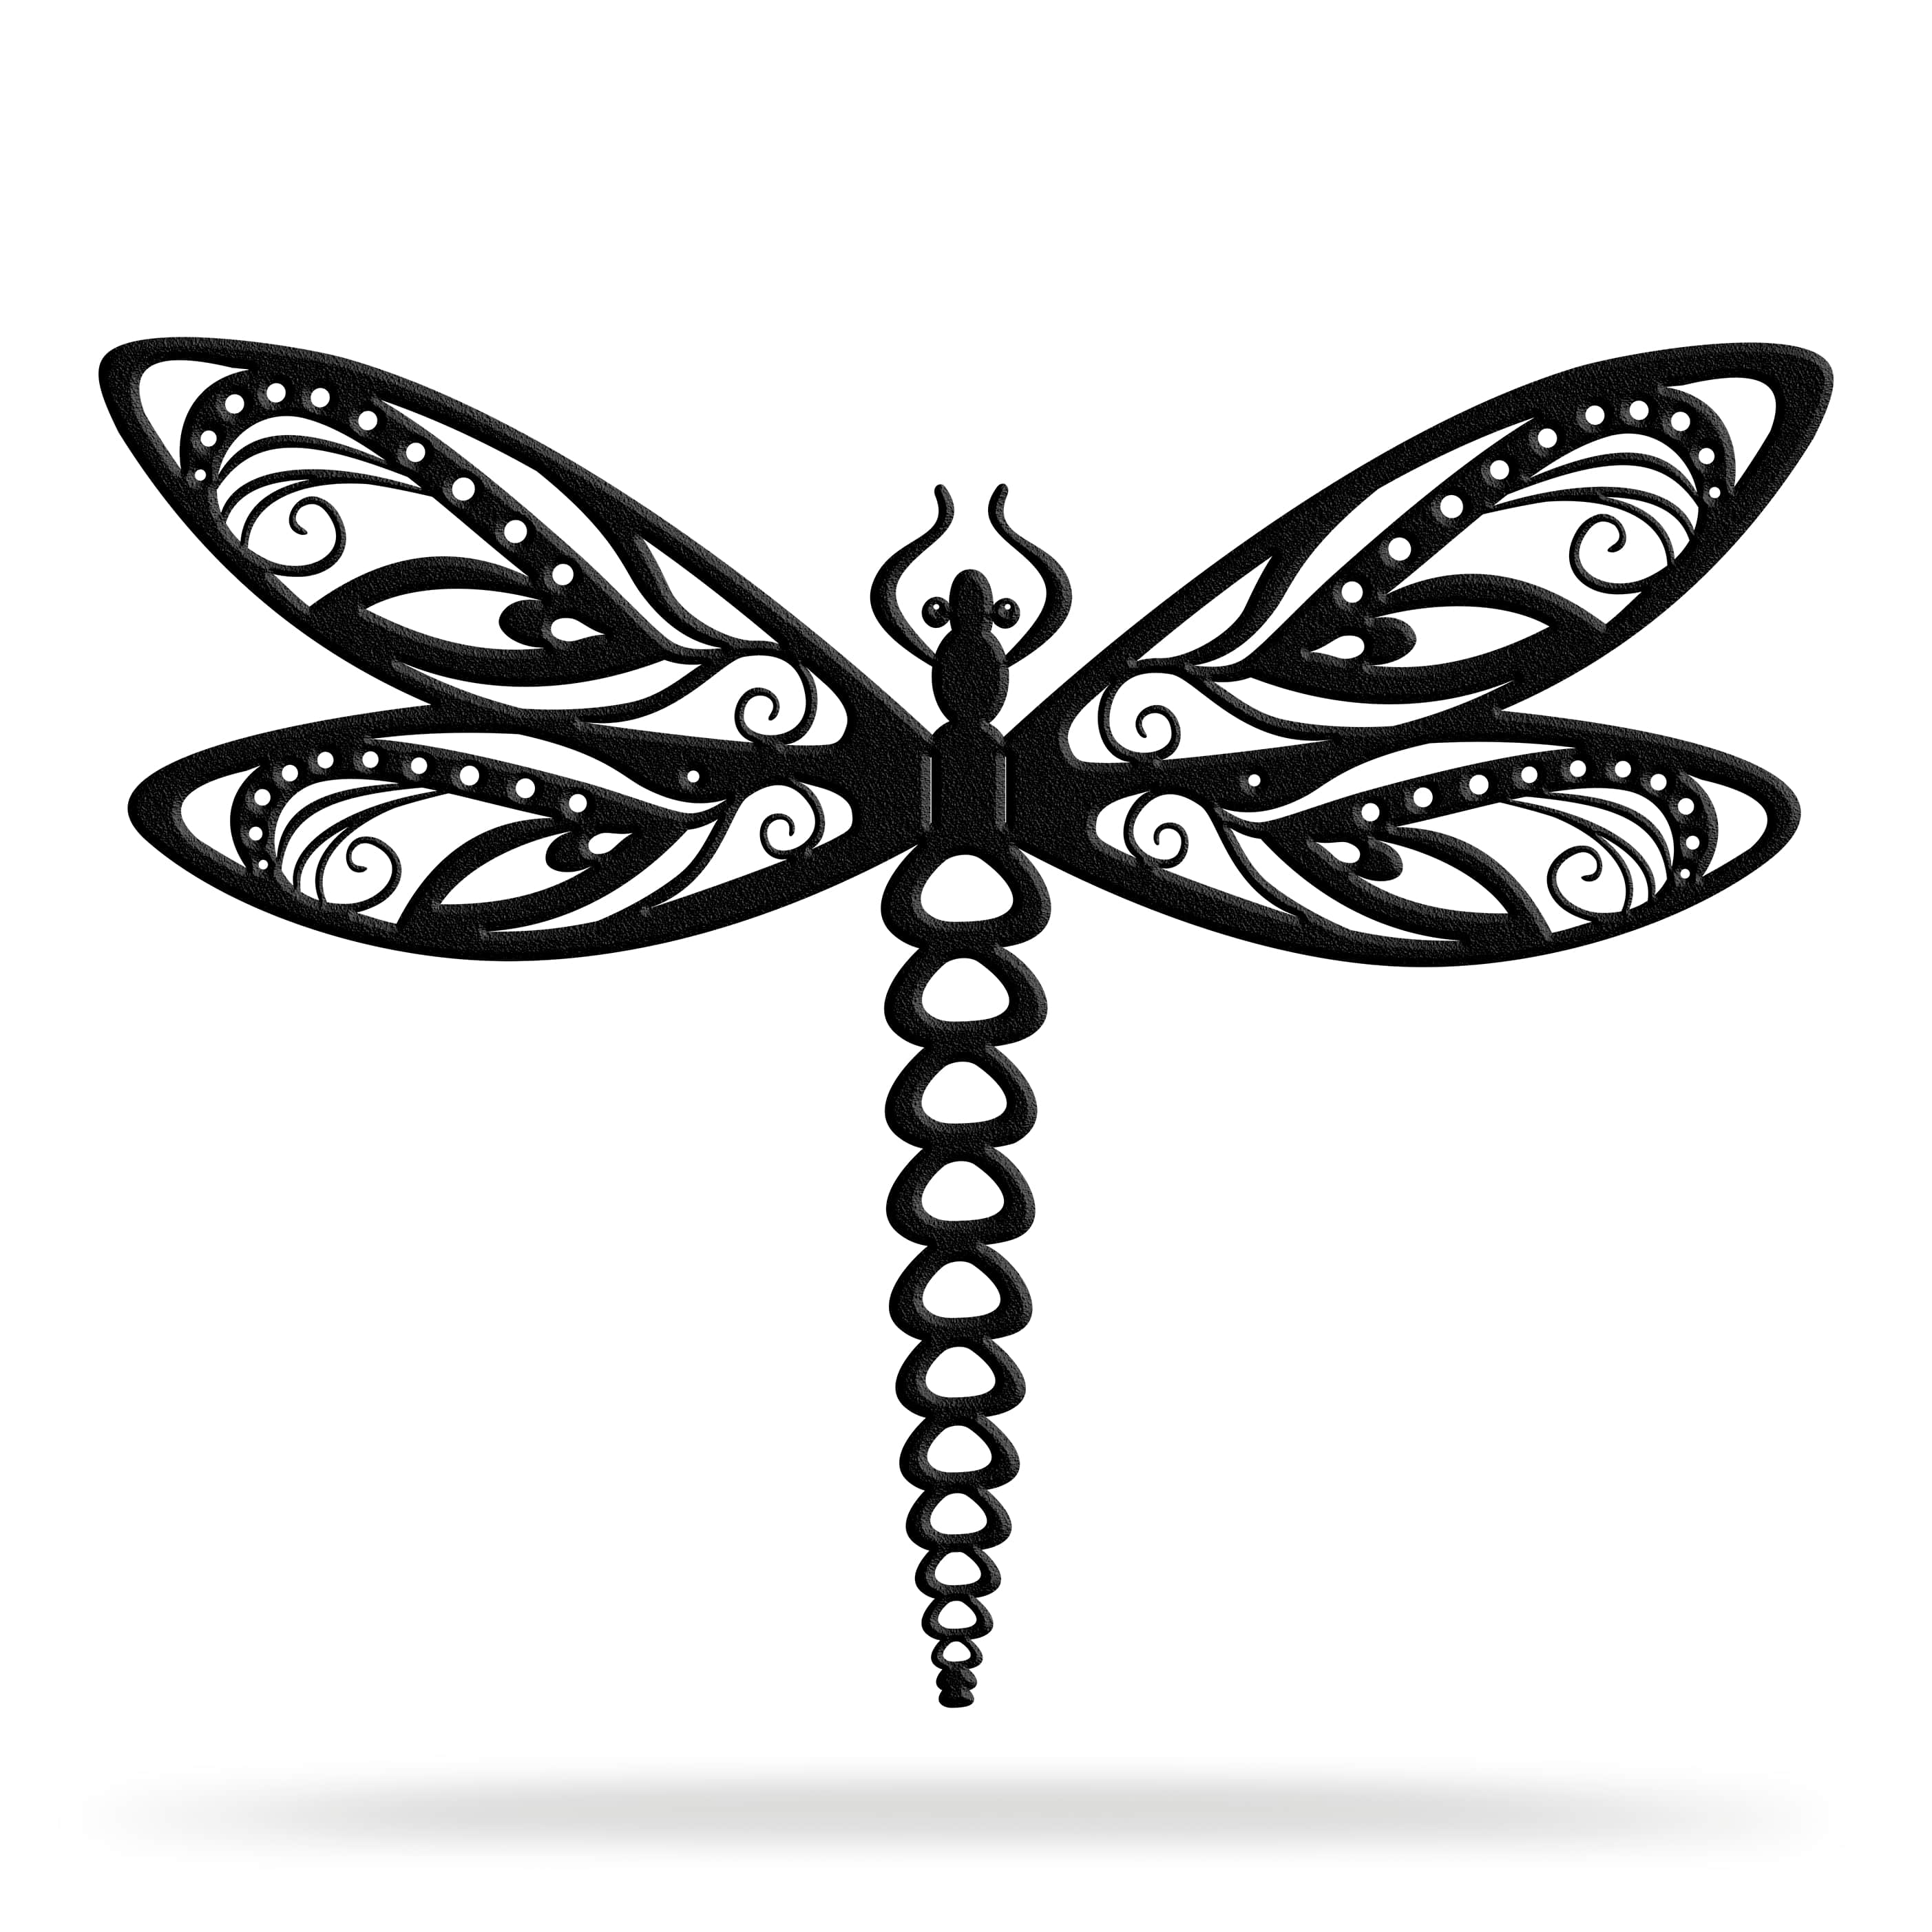 Bluewater Decor Dragonfly Metal Wall Art Home Decor Black